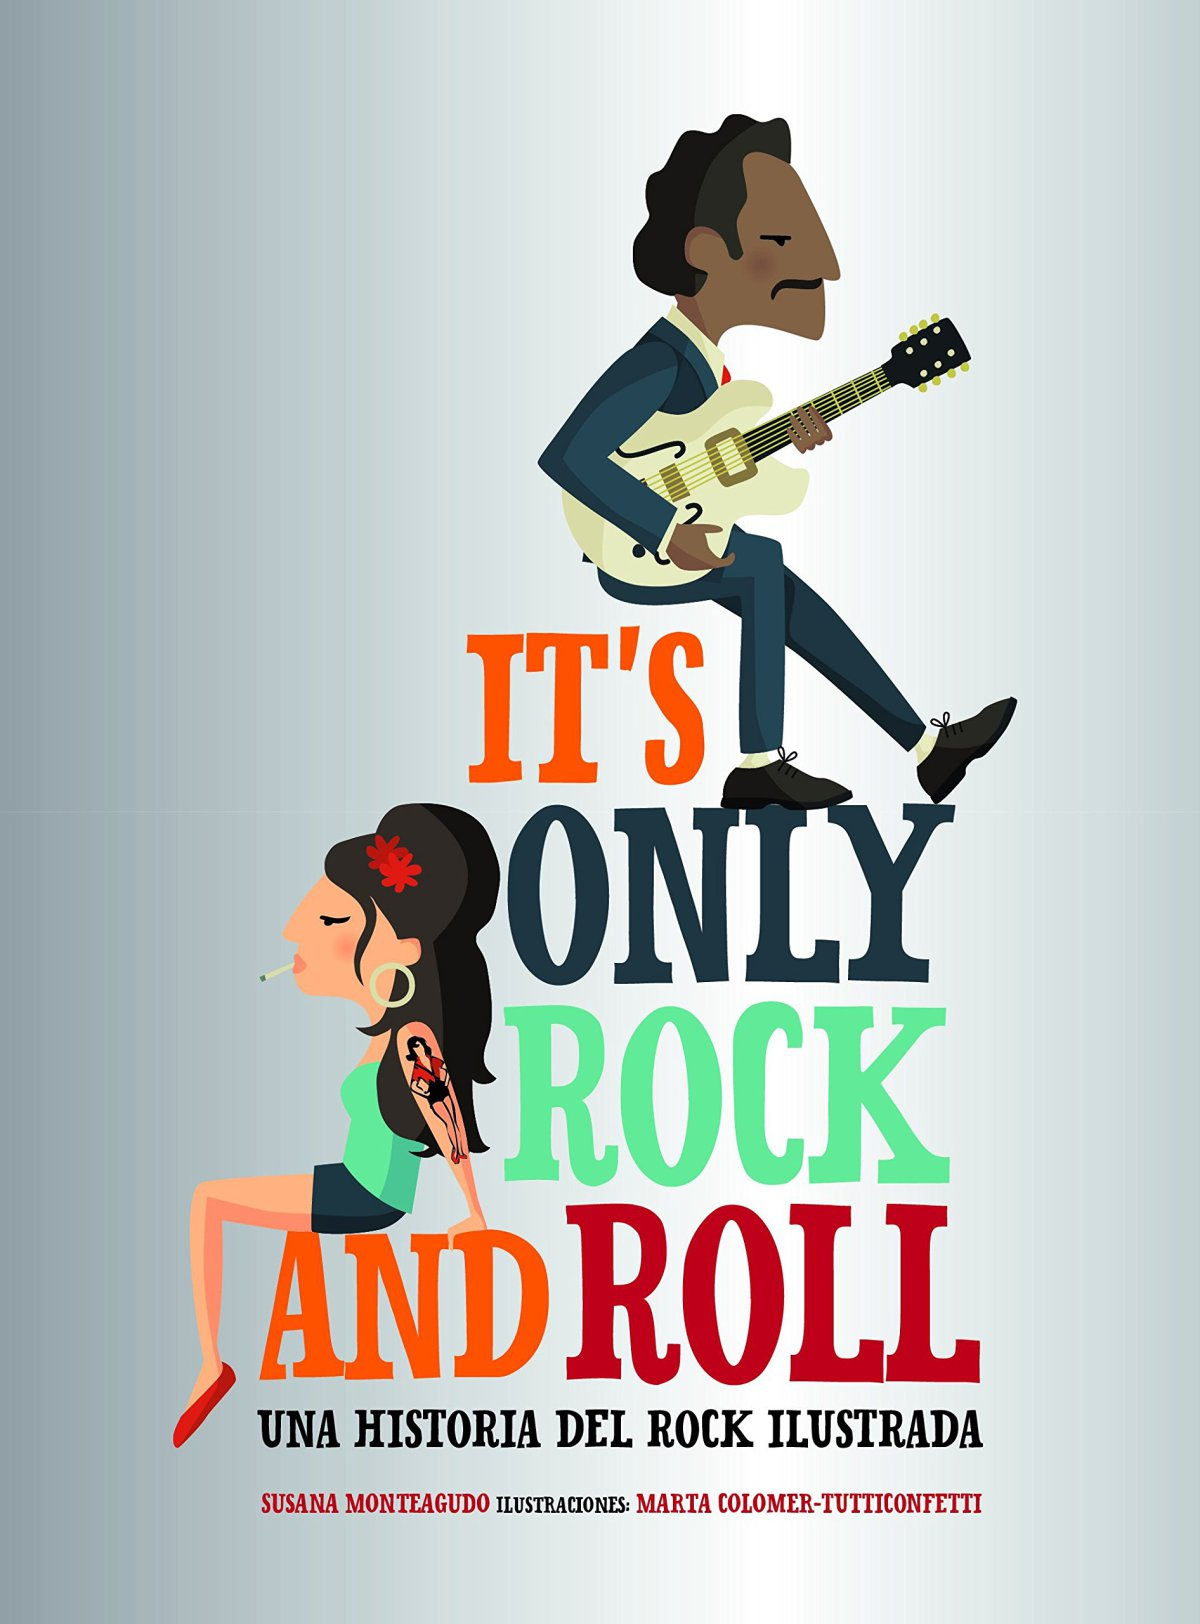 It's only rock and roll: Una historia del rock ilustrada